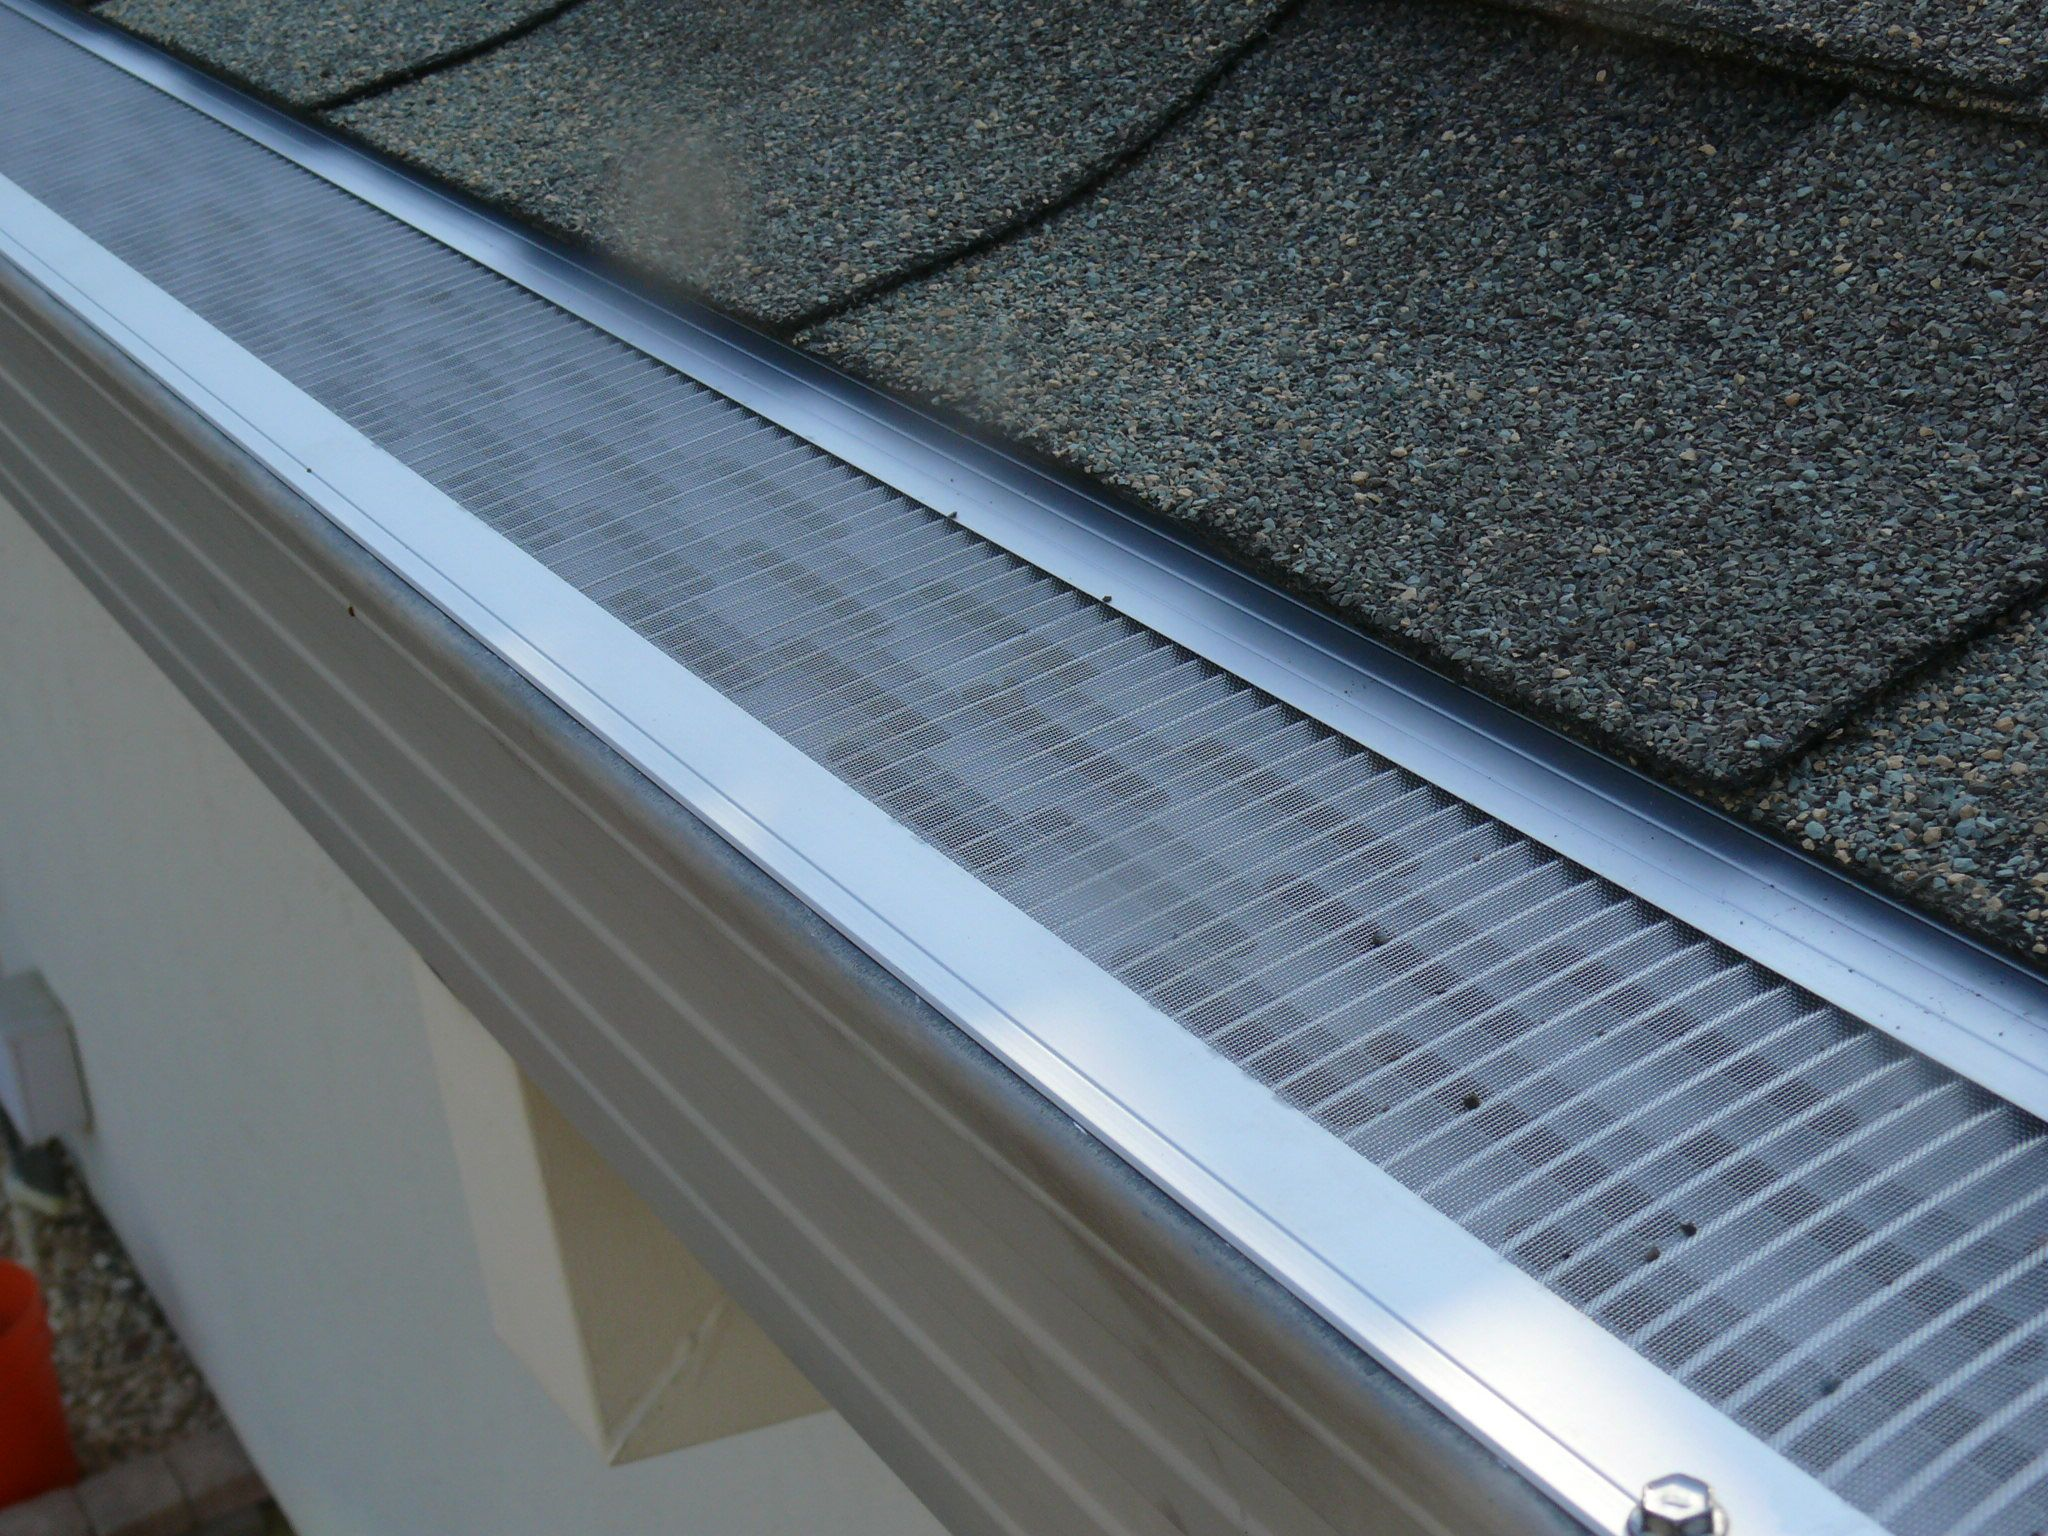 Gutterglove Ultra Consists Of Two Components A Perforated Aluminum Channel And Type 316 Stainless Steel Mesh The Stainl Gutter Protection Gutter Guard Gutter